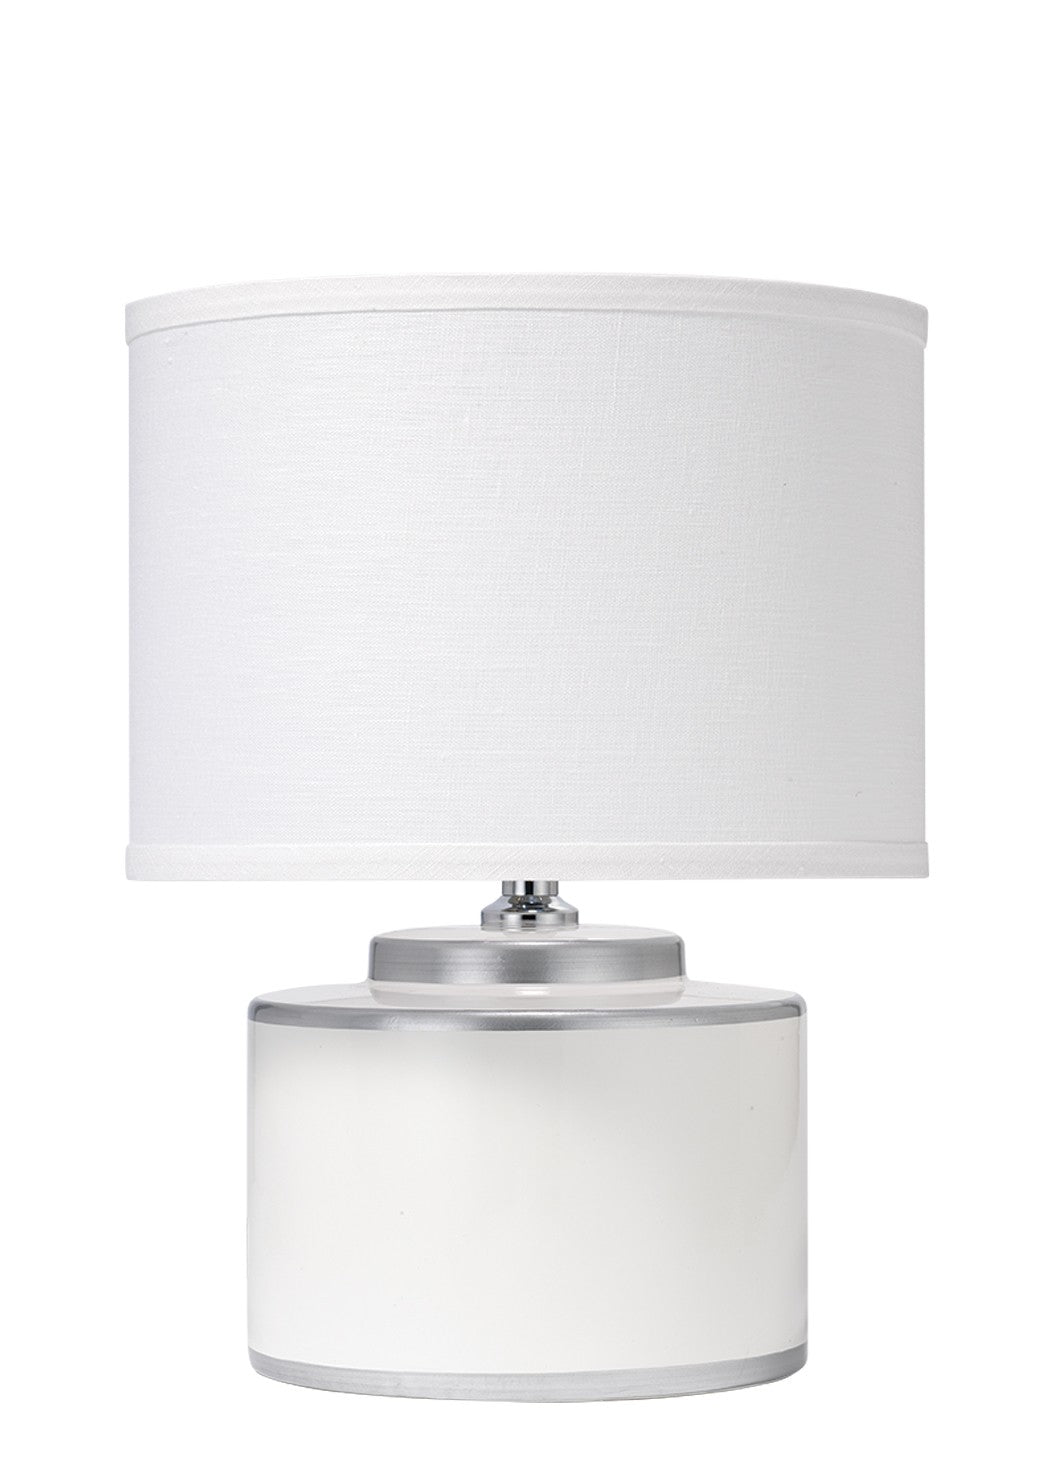 White Basin Table Lamp with Shade